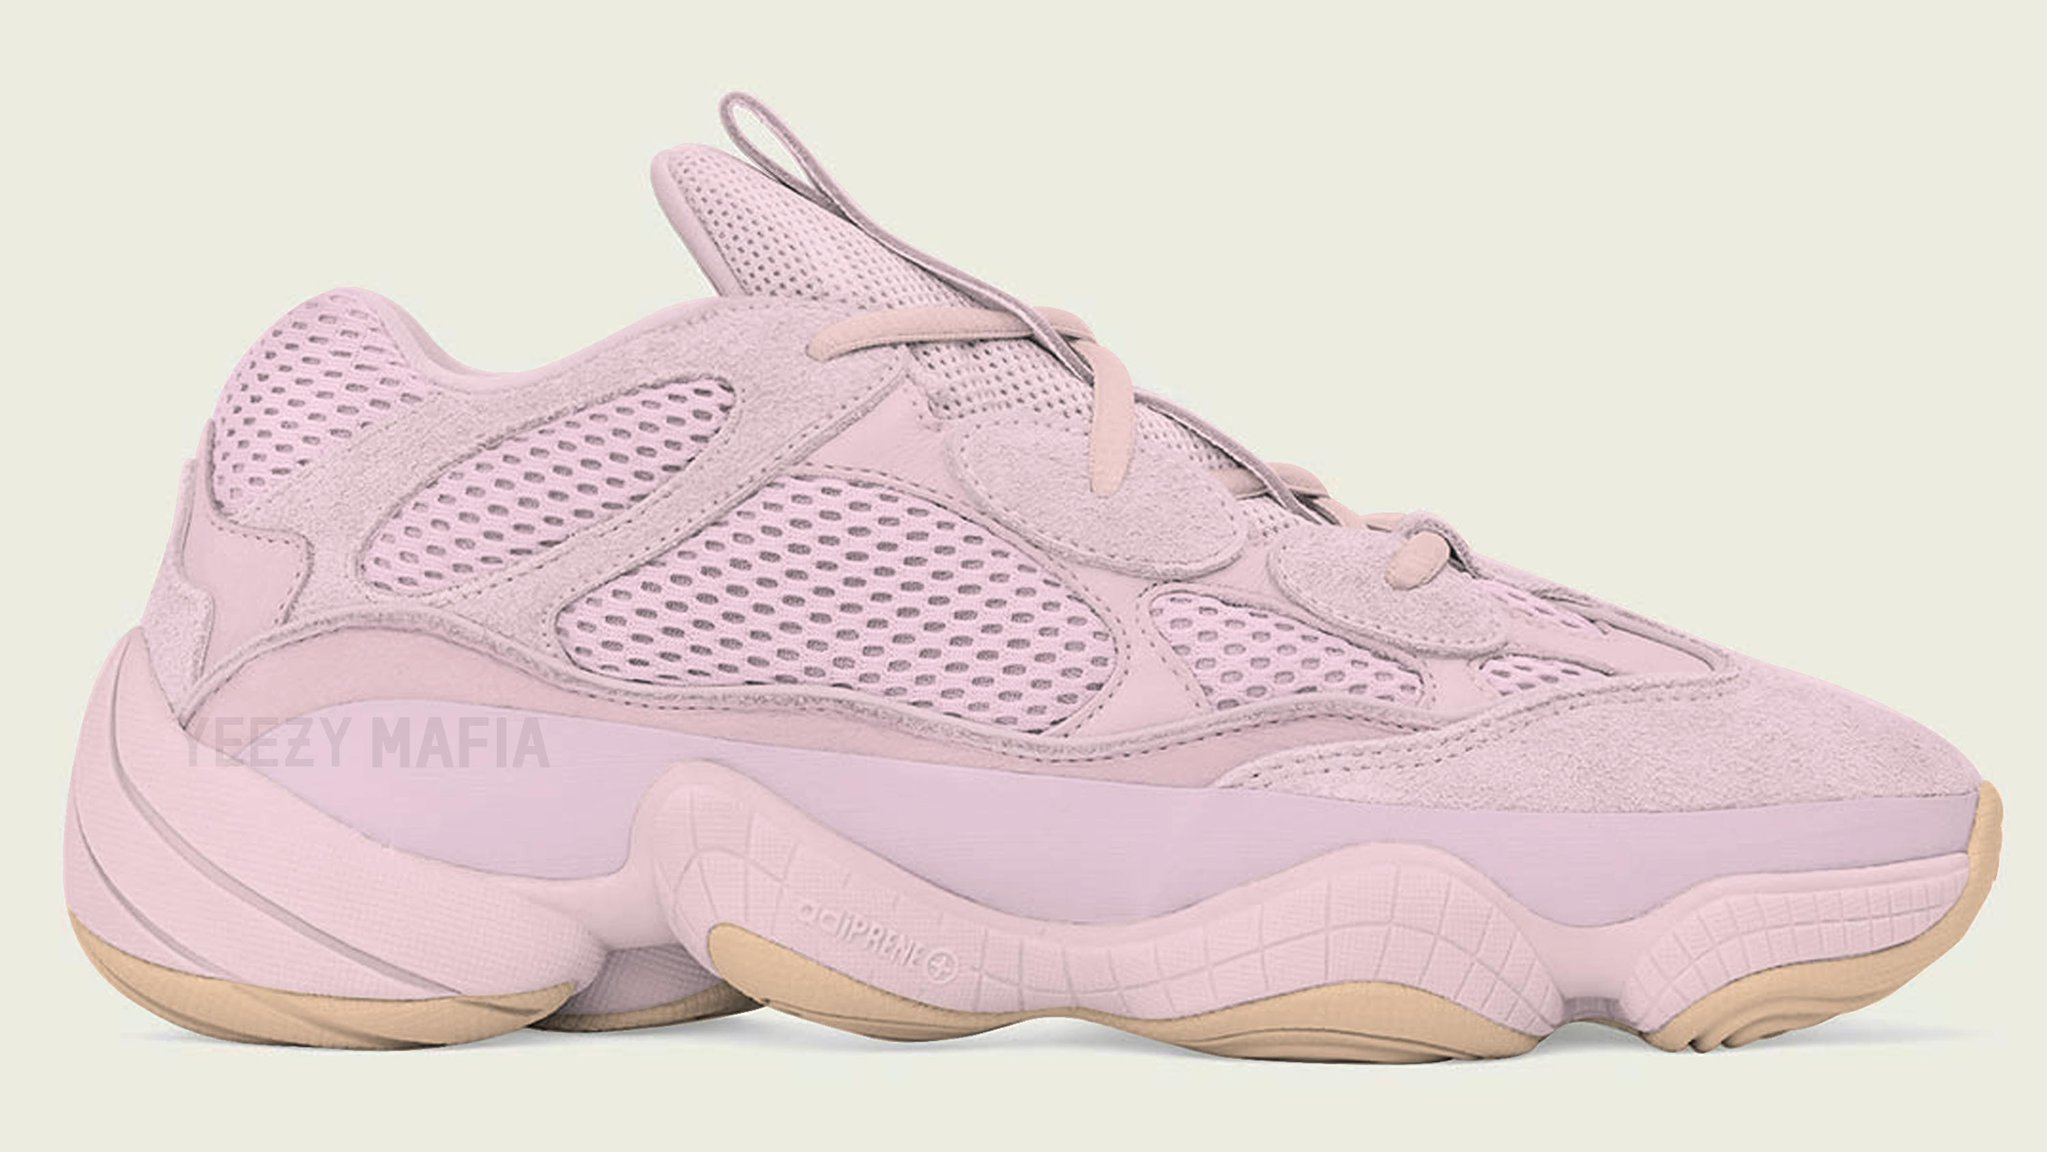 Adidas Yeezy 500 'Soft Vision' Releasing This Fall